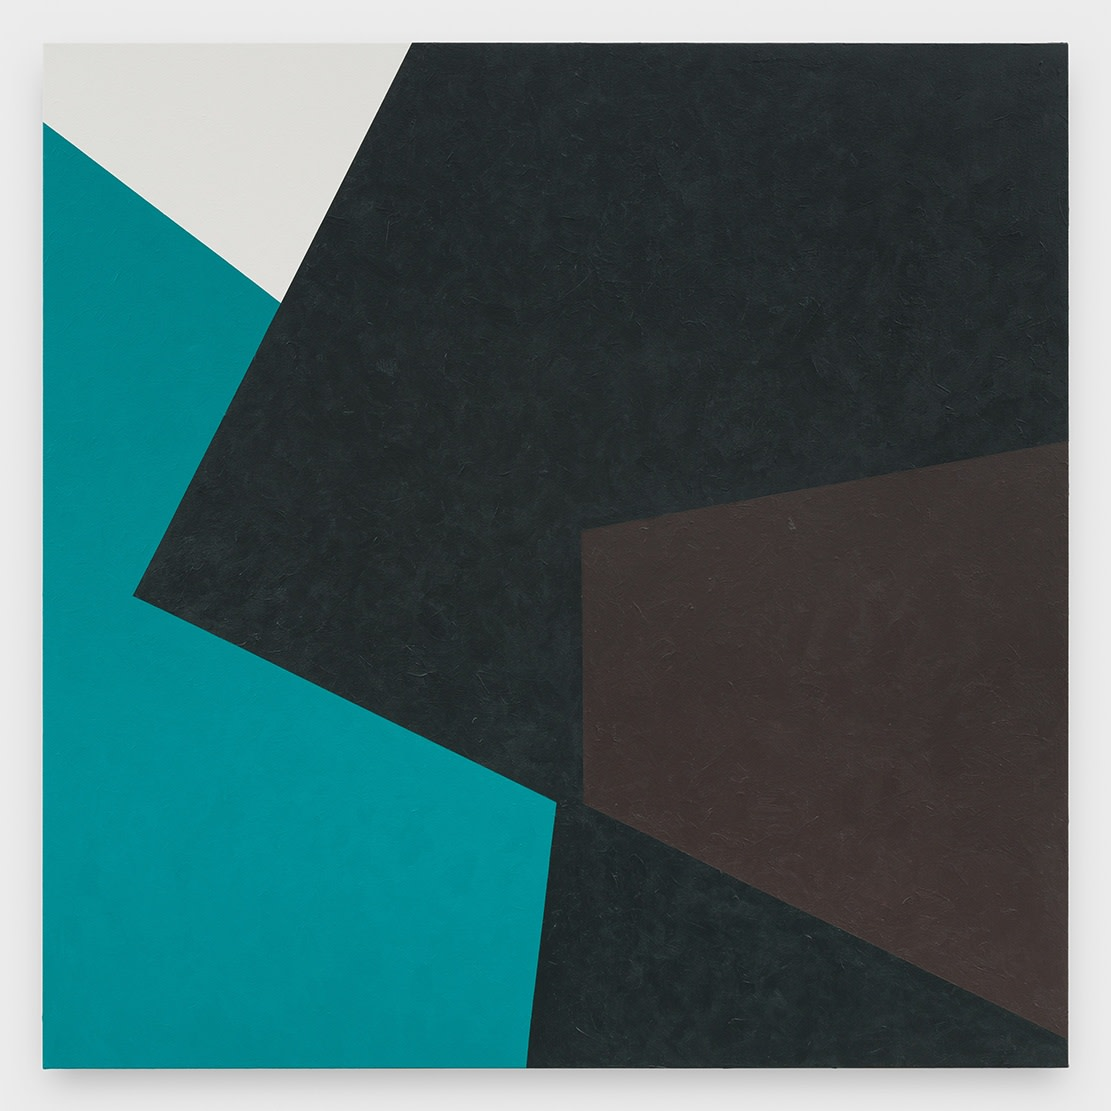 Virginia Jaramillo, Site: No. 15 13.5099° S, 71.9817° W, 2018, Acrylic on canvas, 182.9 x 182.9 cm, 72 x 72 in